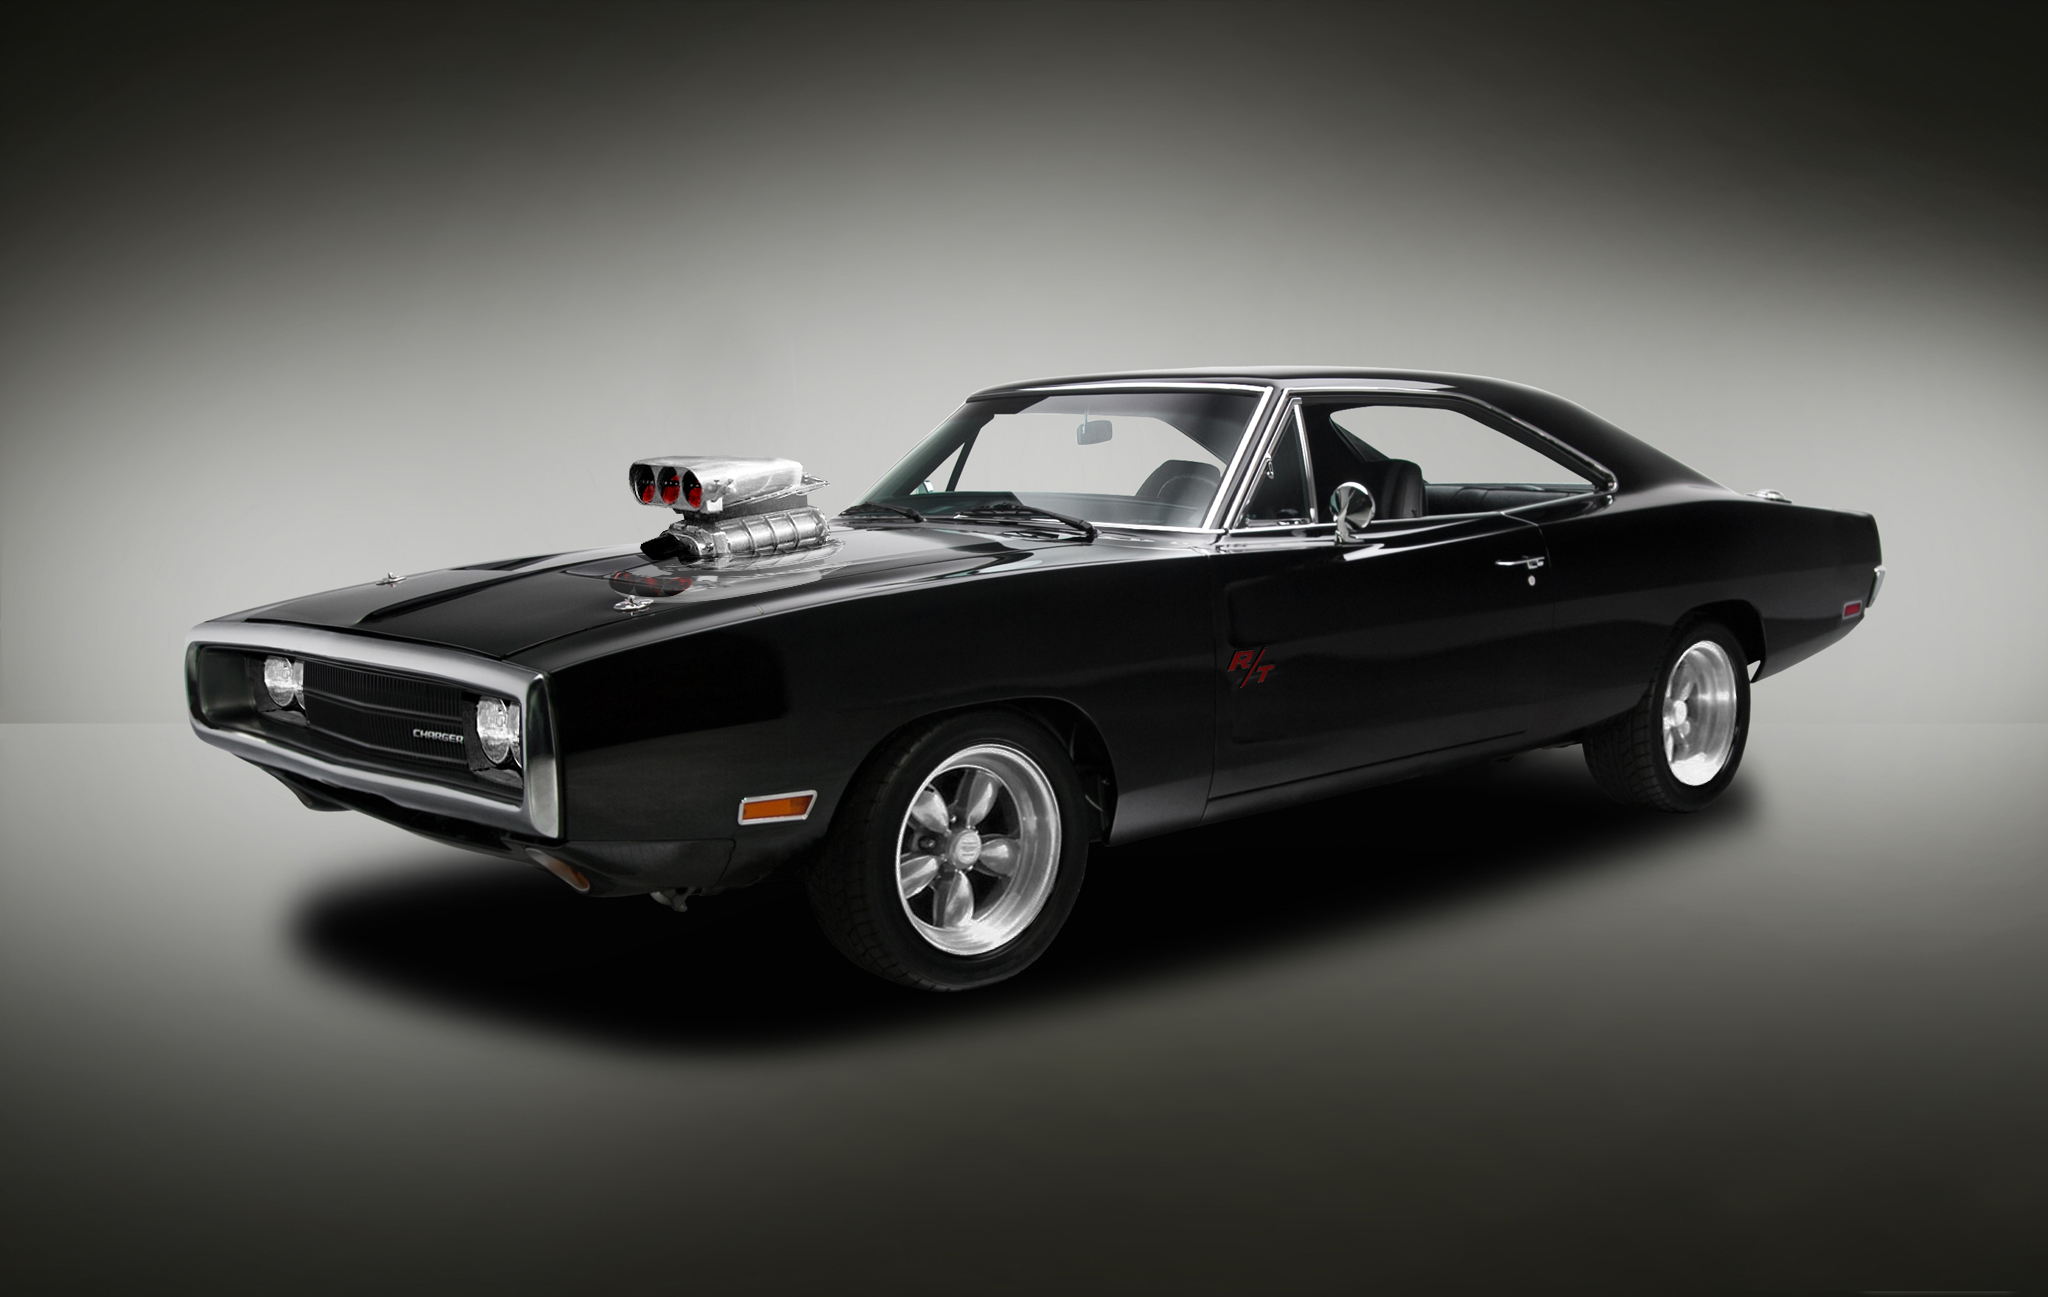 1970 - Dodge Charger RT by 4WheelsSociety on DeviantArt